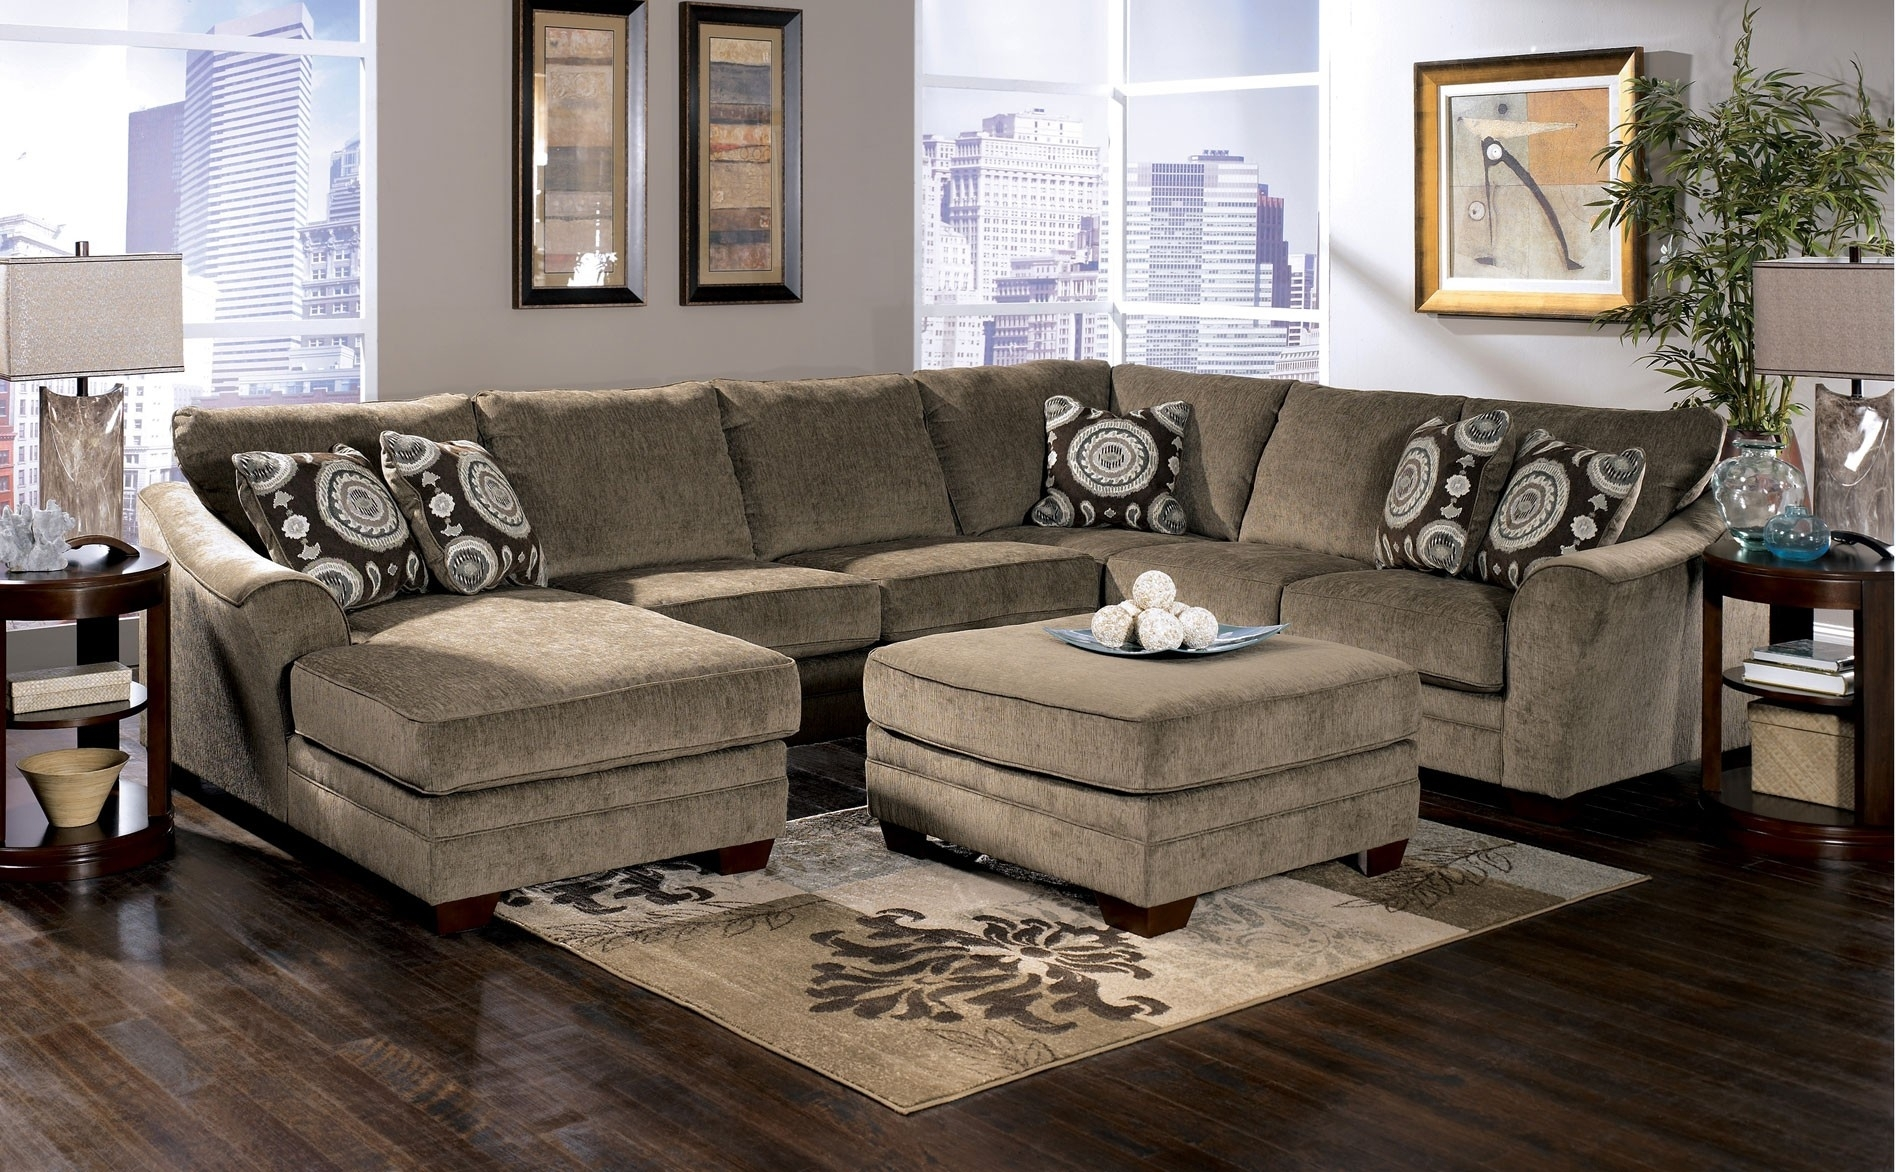 Best Black Fabric Sectional Sofas Images – Liltigertoo Regarding Sectional Sofas With Chaise Lounge And Ottoman (View 7 of 15)